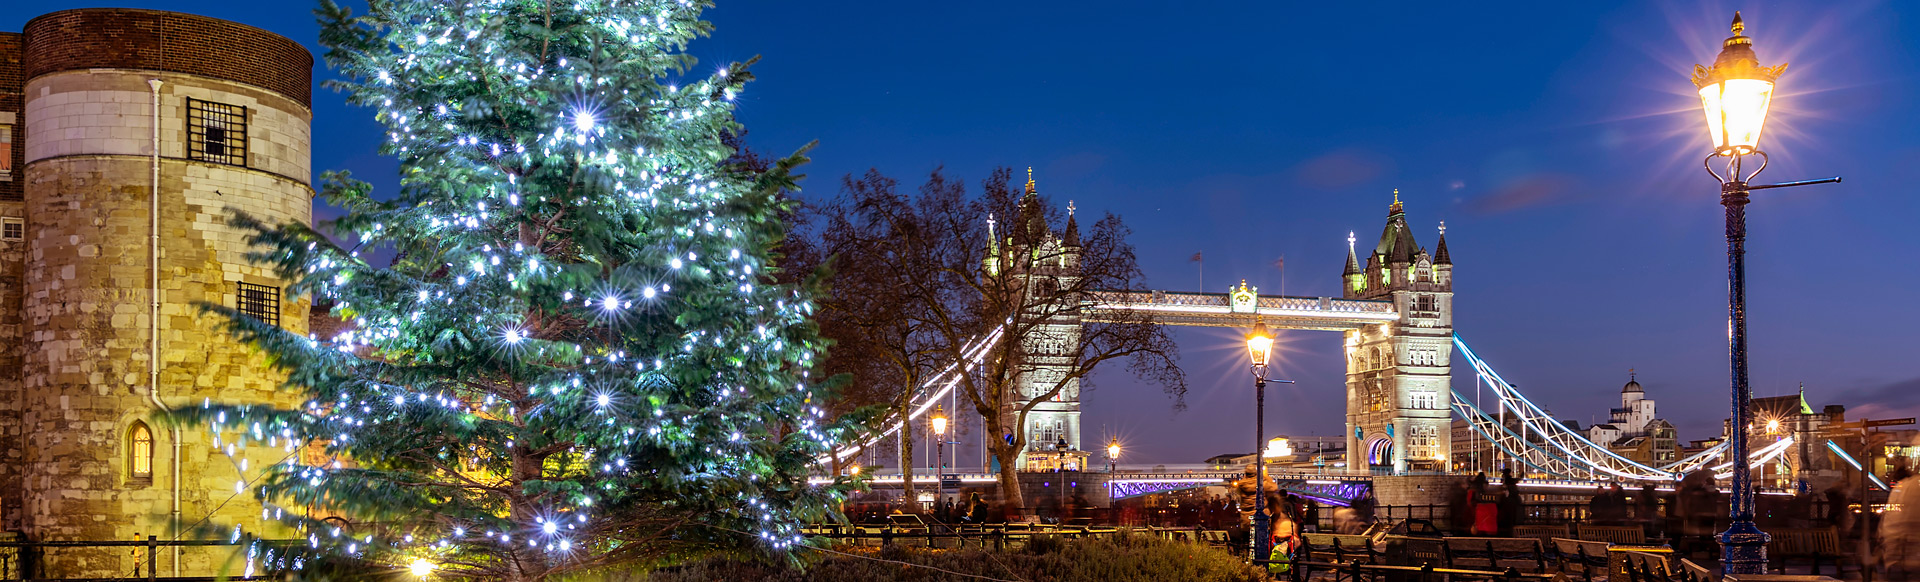 Christmas 2020 In London Christmas in London 2020   What's On   visitlondon.com